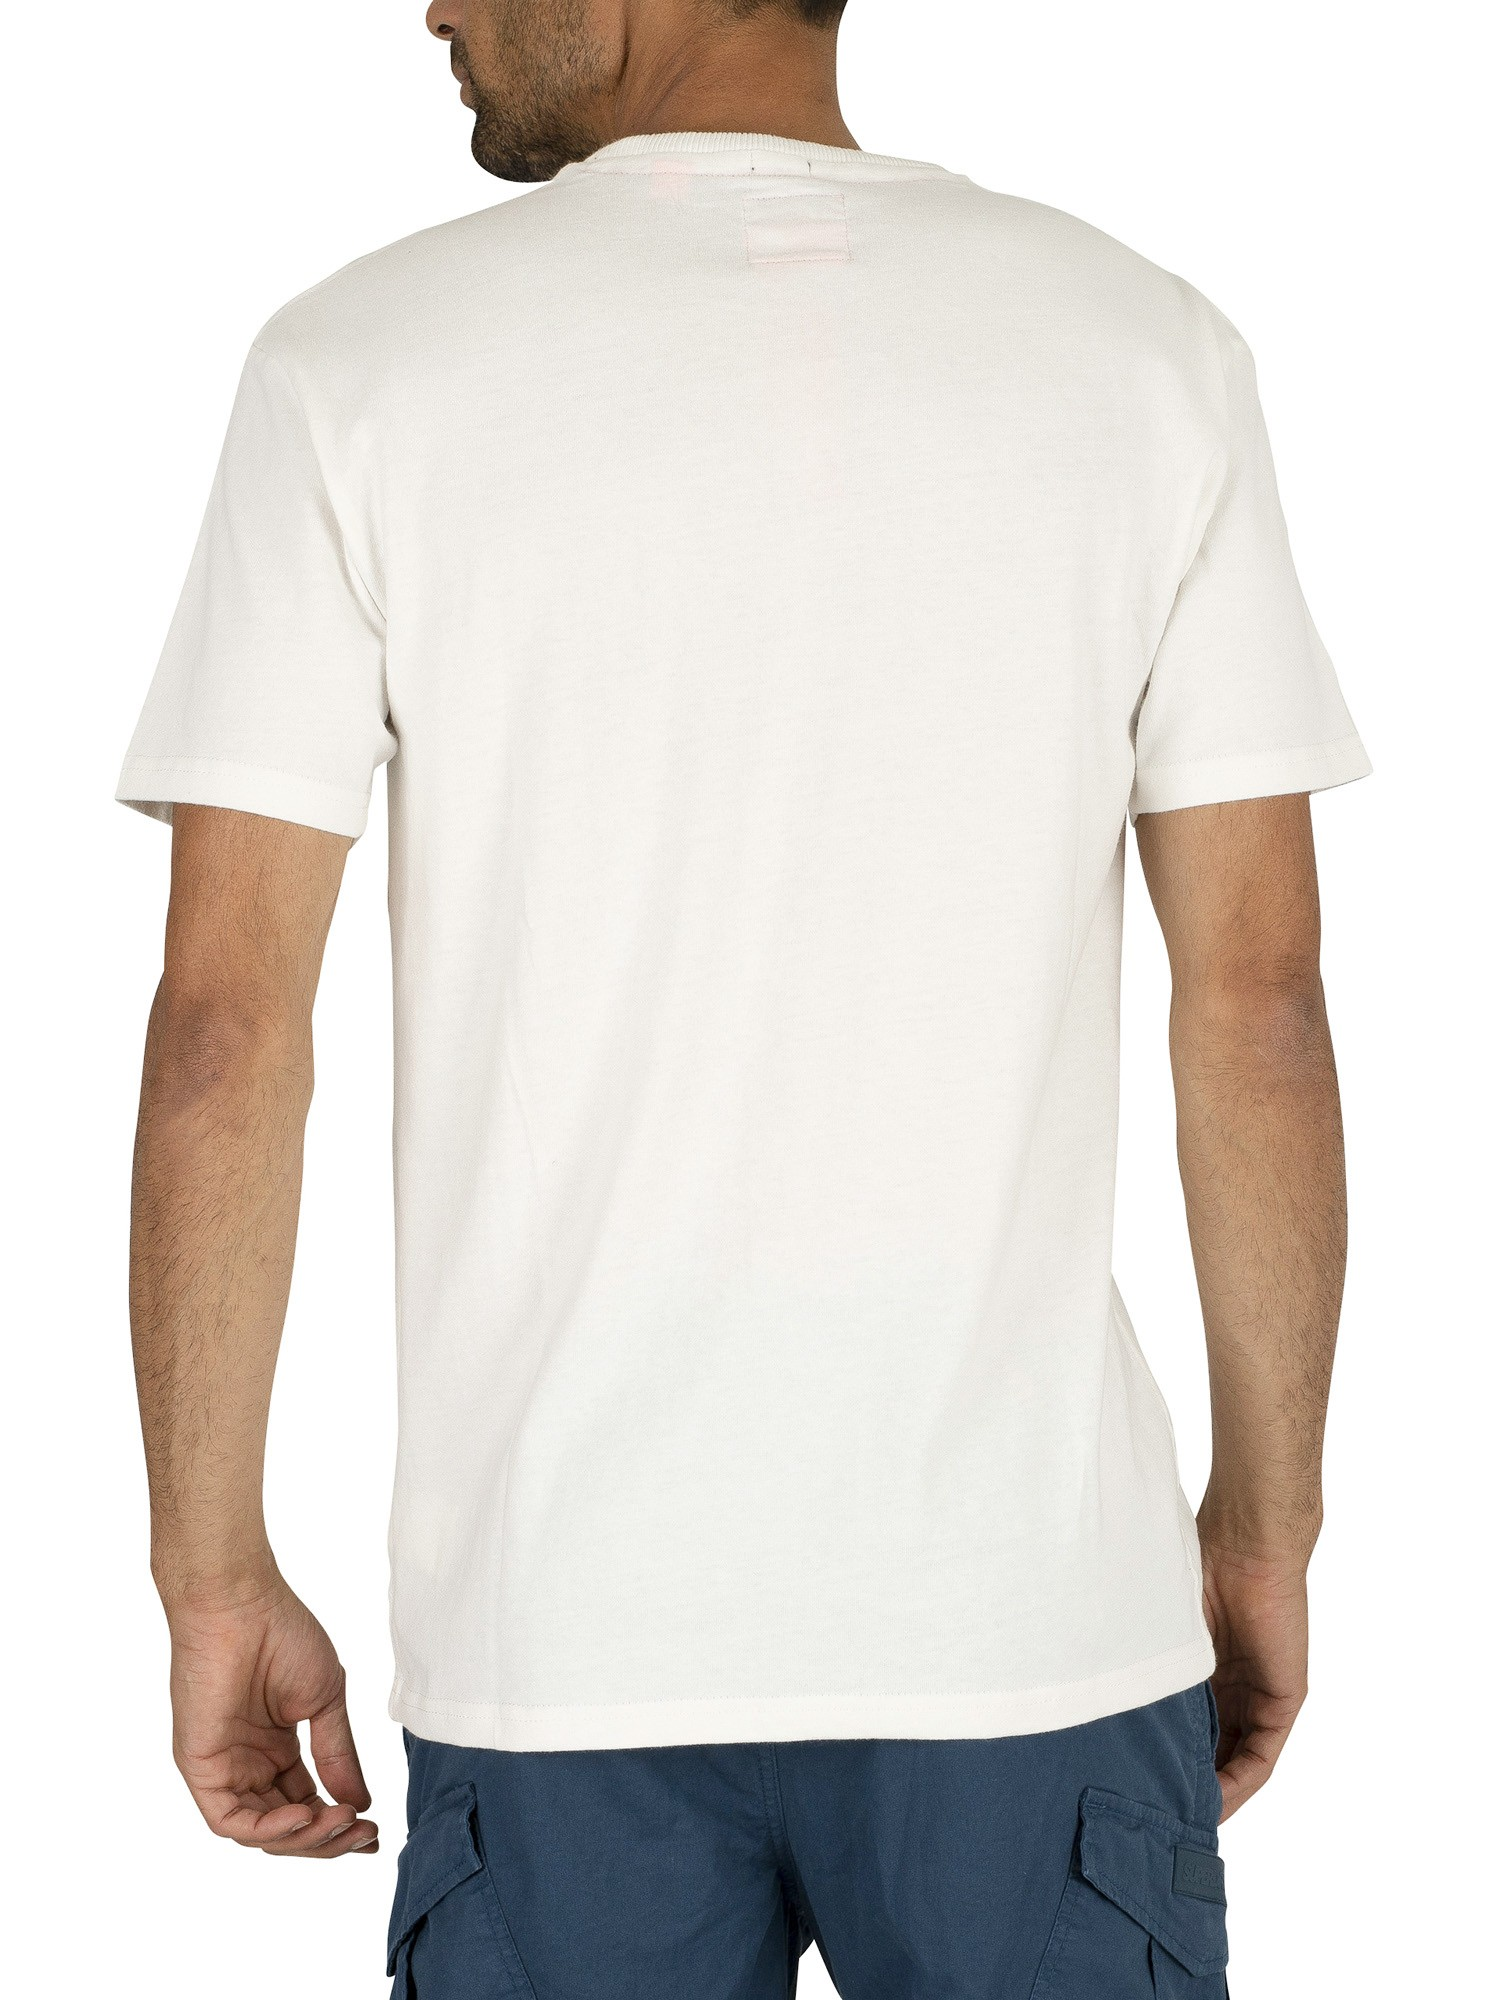 Superdry International Youth Box Fit T-Shirt - Off White